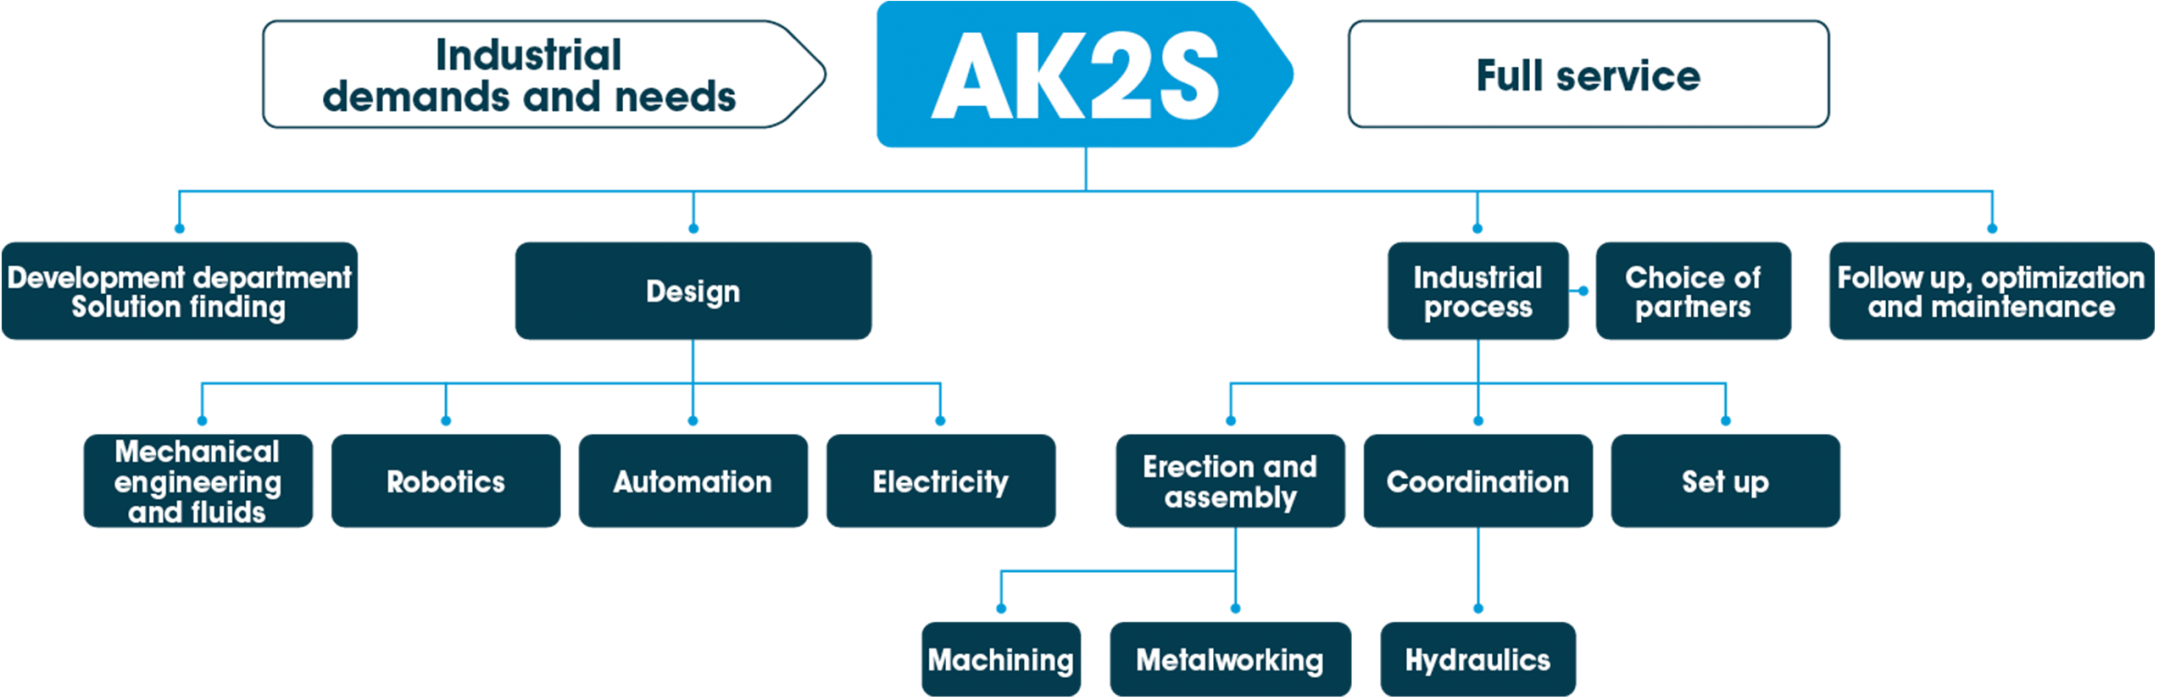 https://ak2s.fr/wp-content/uploads/2020/01/schema-ak2s-robotique-uk-2170x700.png